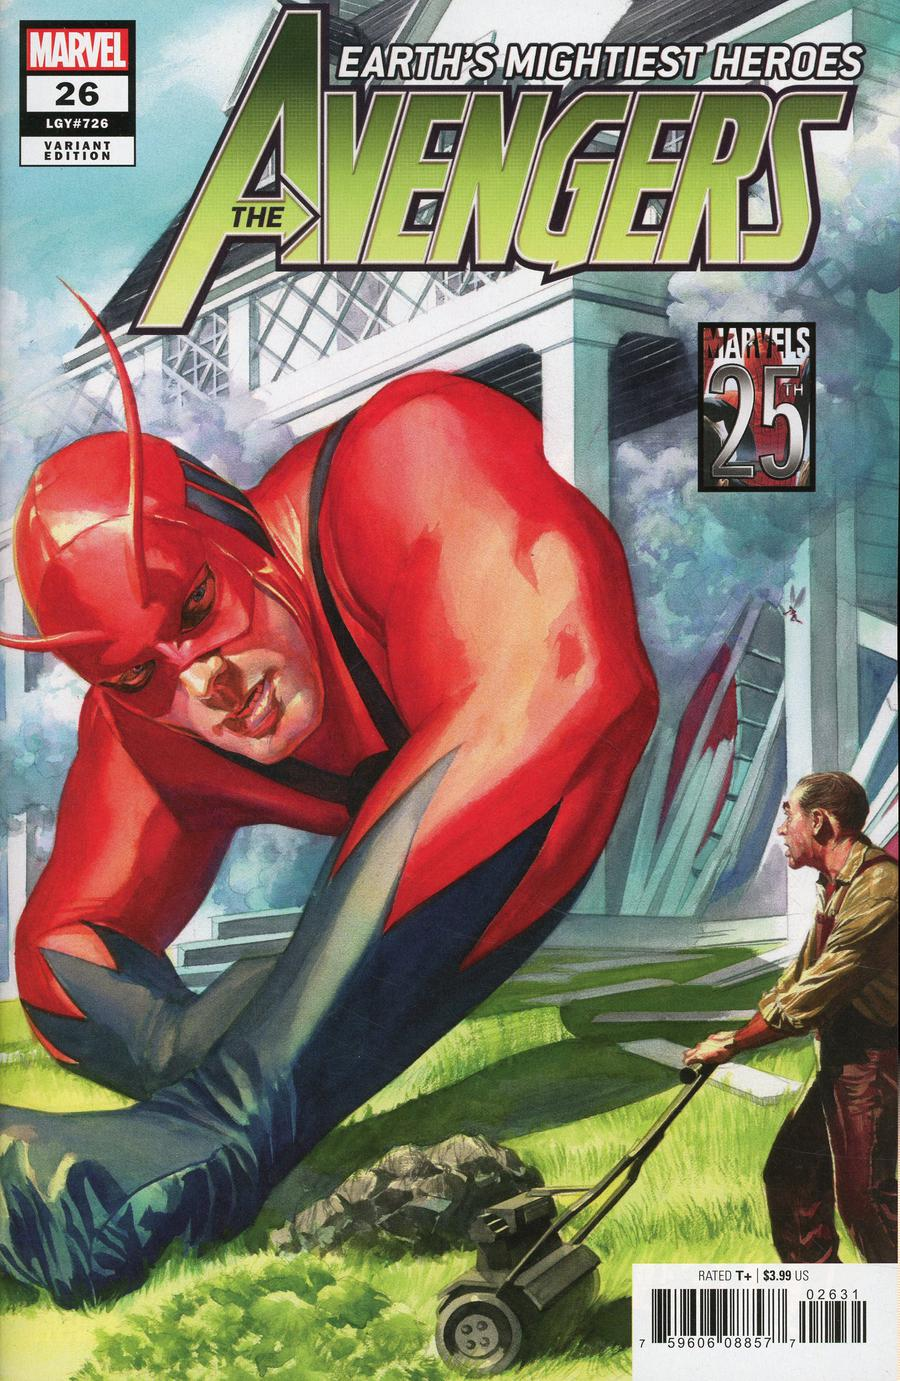 Avengers Vol 7 #26 Cover B Variant Alex Ross Marvels 25th Cover